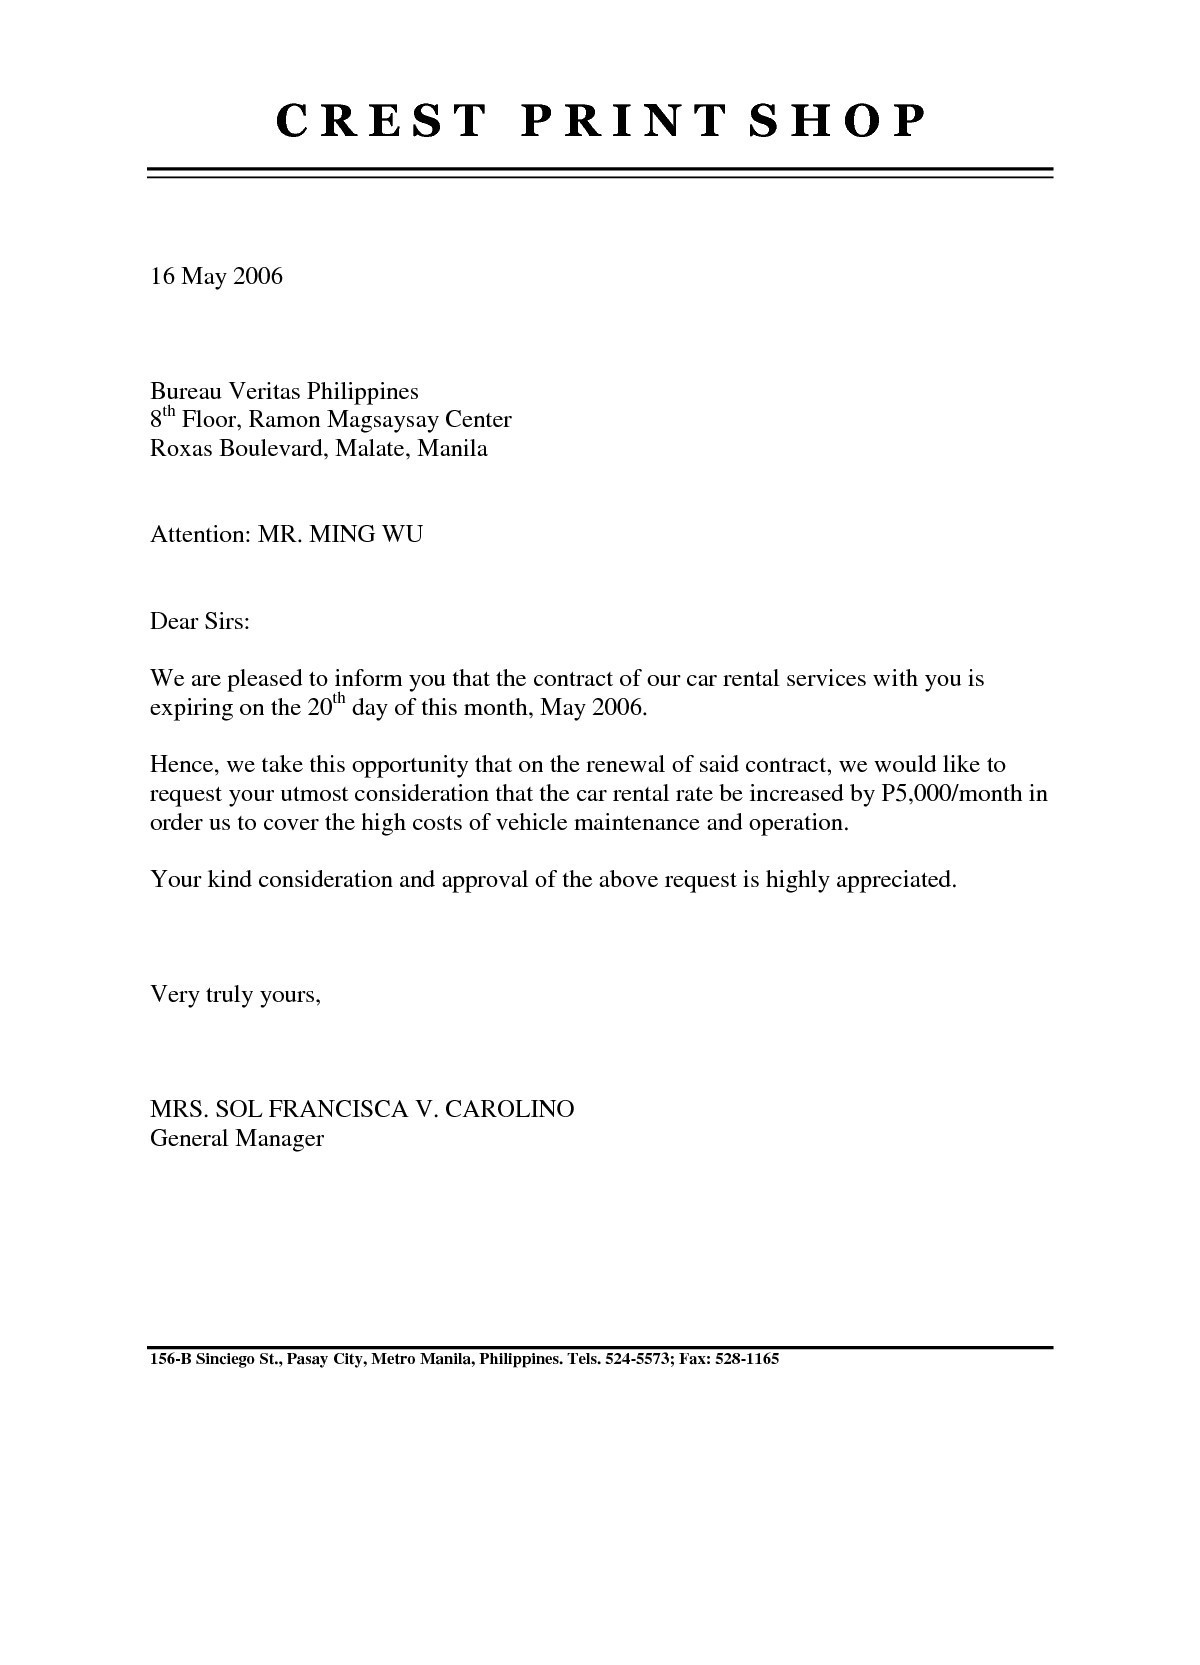 lease renewal letter template Collection-Tenancy Agreement Renewal Template Awesome Od Renewal Letter Sample Archives Codeshaker Co Best Renewal Lease 5-r